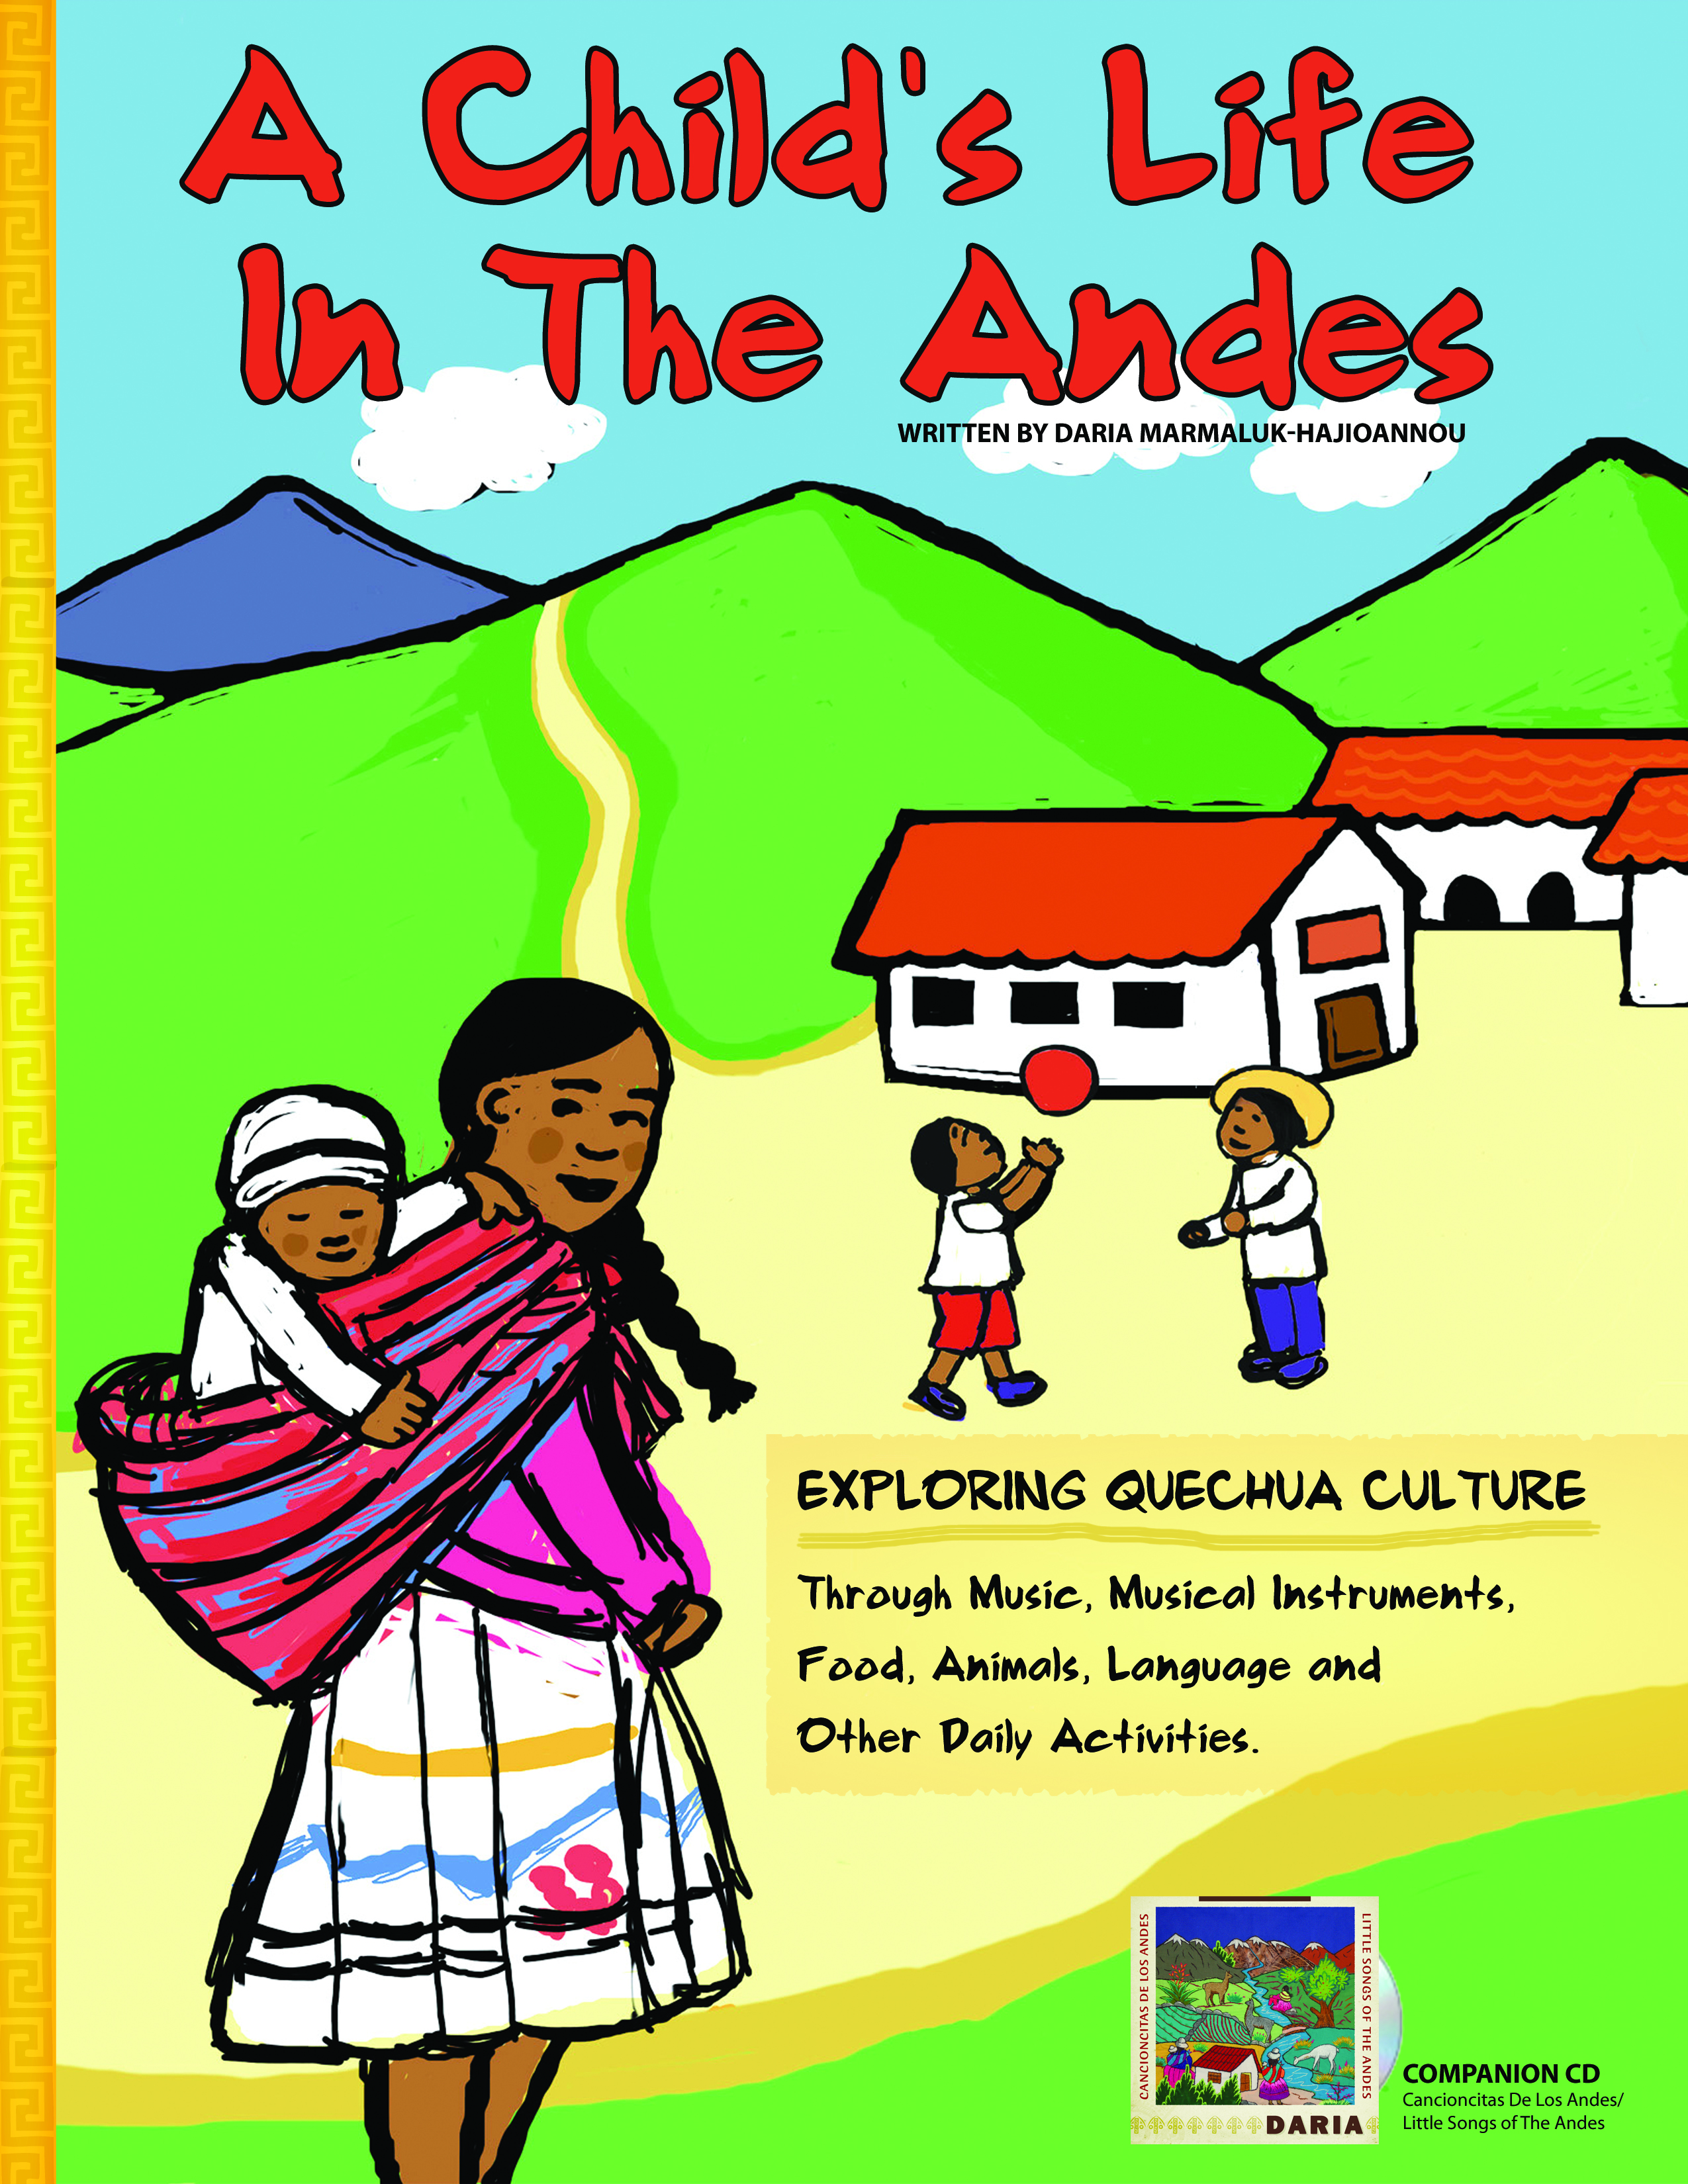 Daria - Cancioncitas Booklet Cover - Hispanic Heritage Month Blog Hop